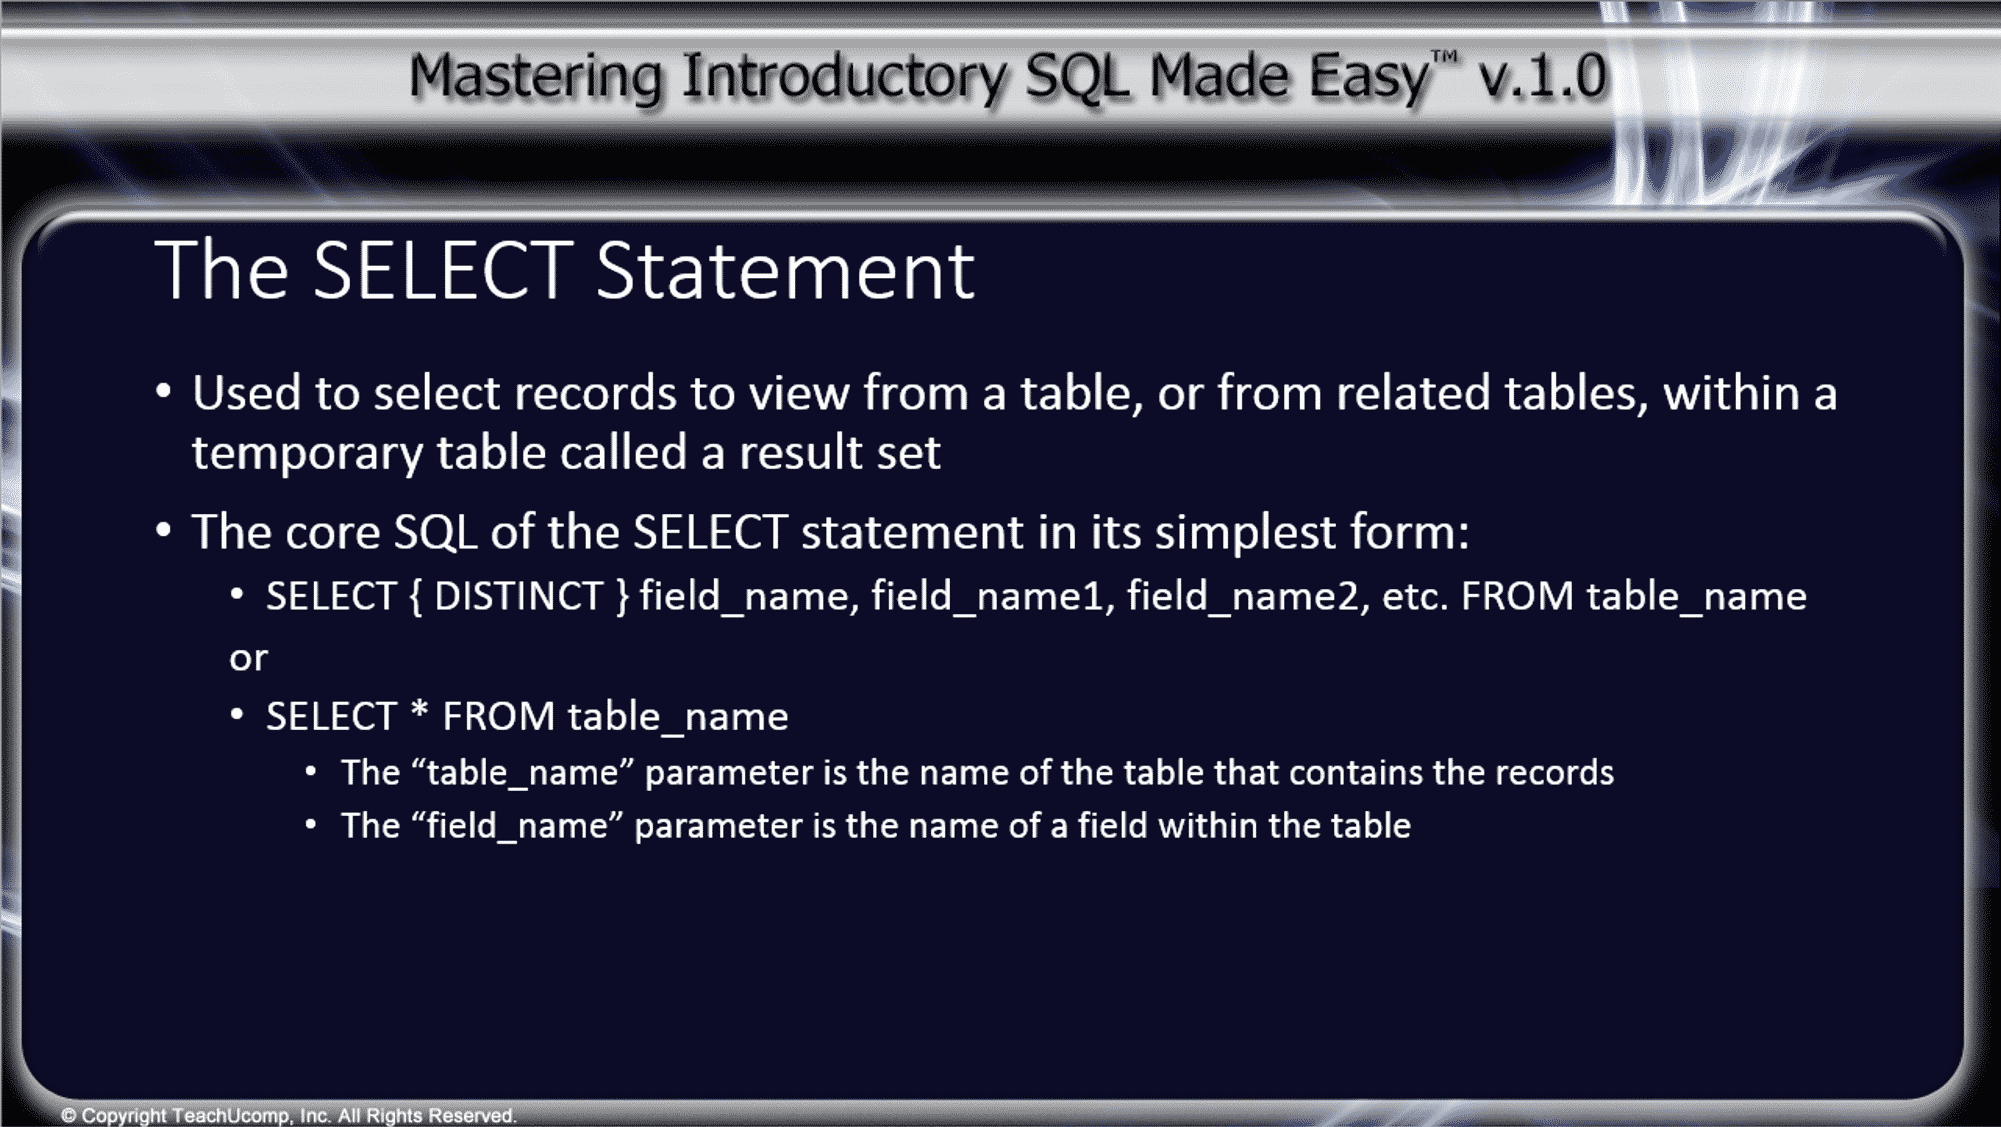 The SELECT Statement in SQL- Tutorial - TeachUcomp, Inc